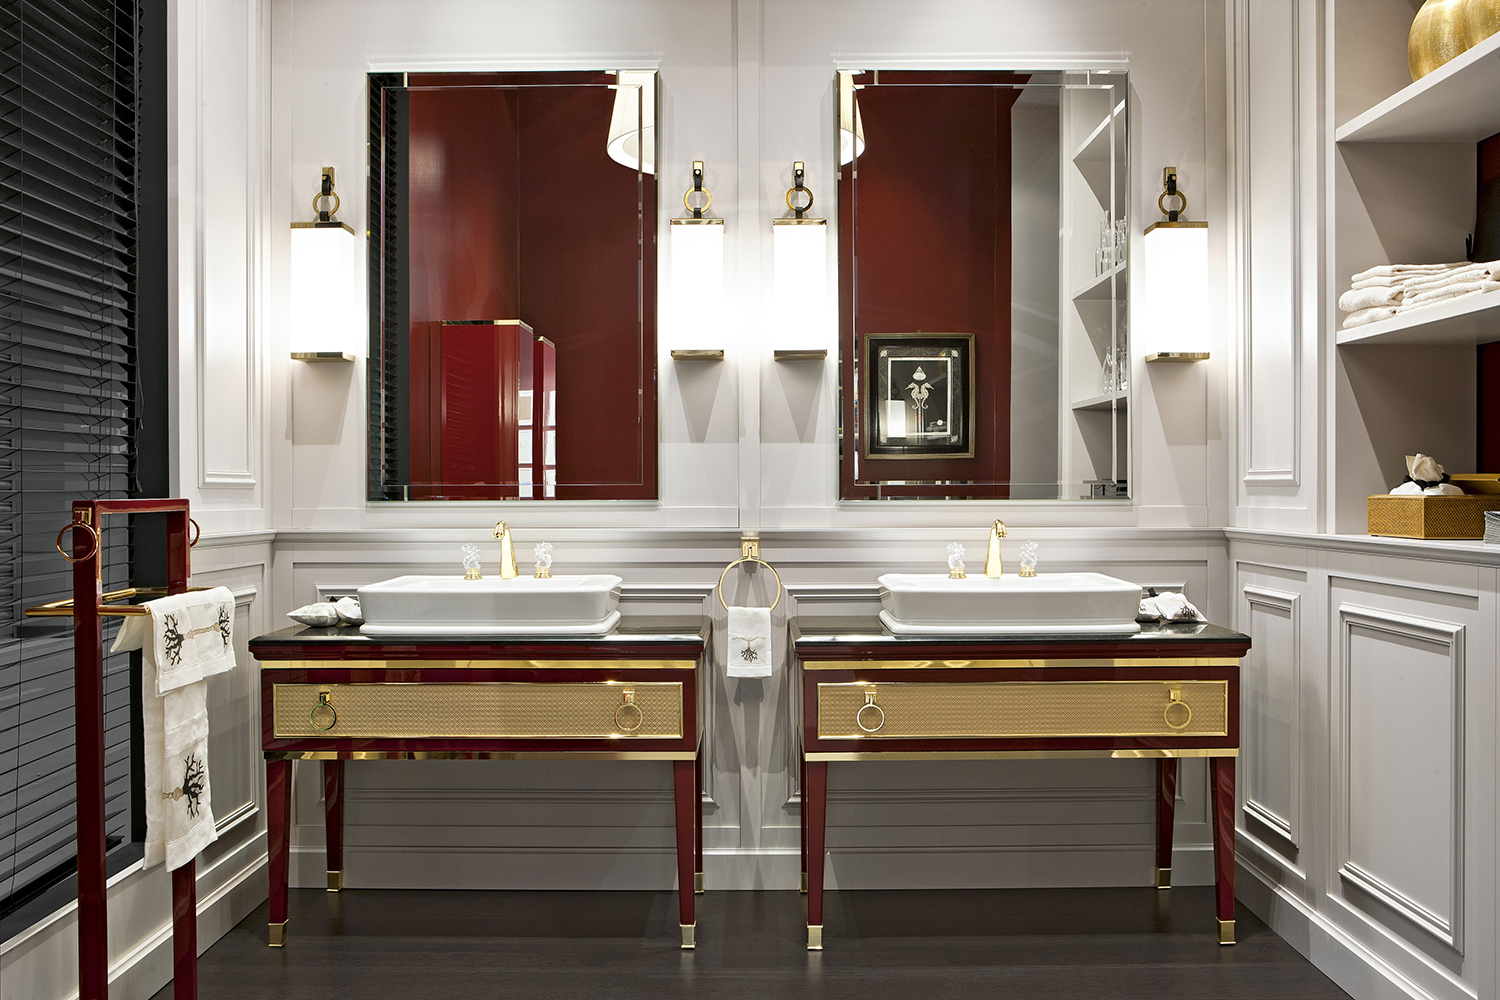 Delightful Modern, Classic, Art Deco Bathroom Vanities. Visit Our NYC Bathroom  Vanities Showroom For More Details.